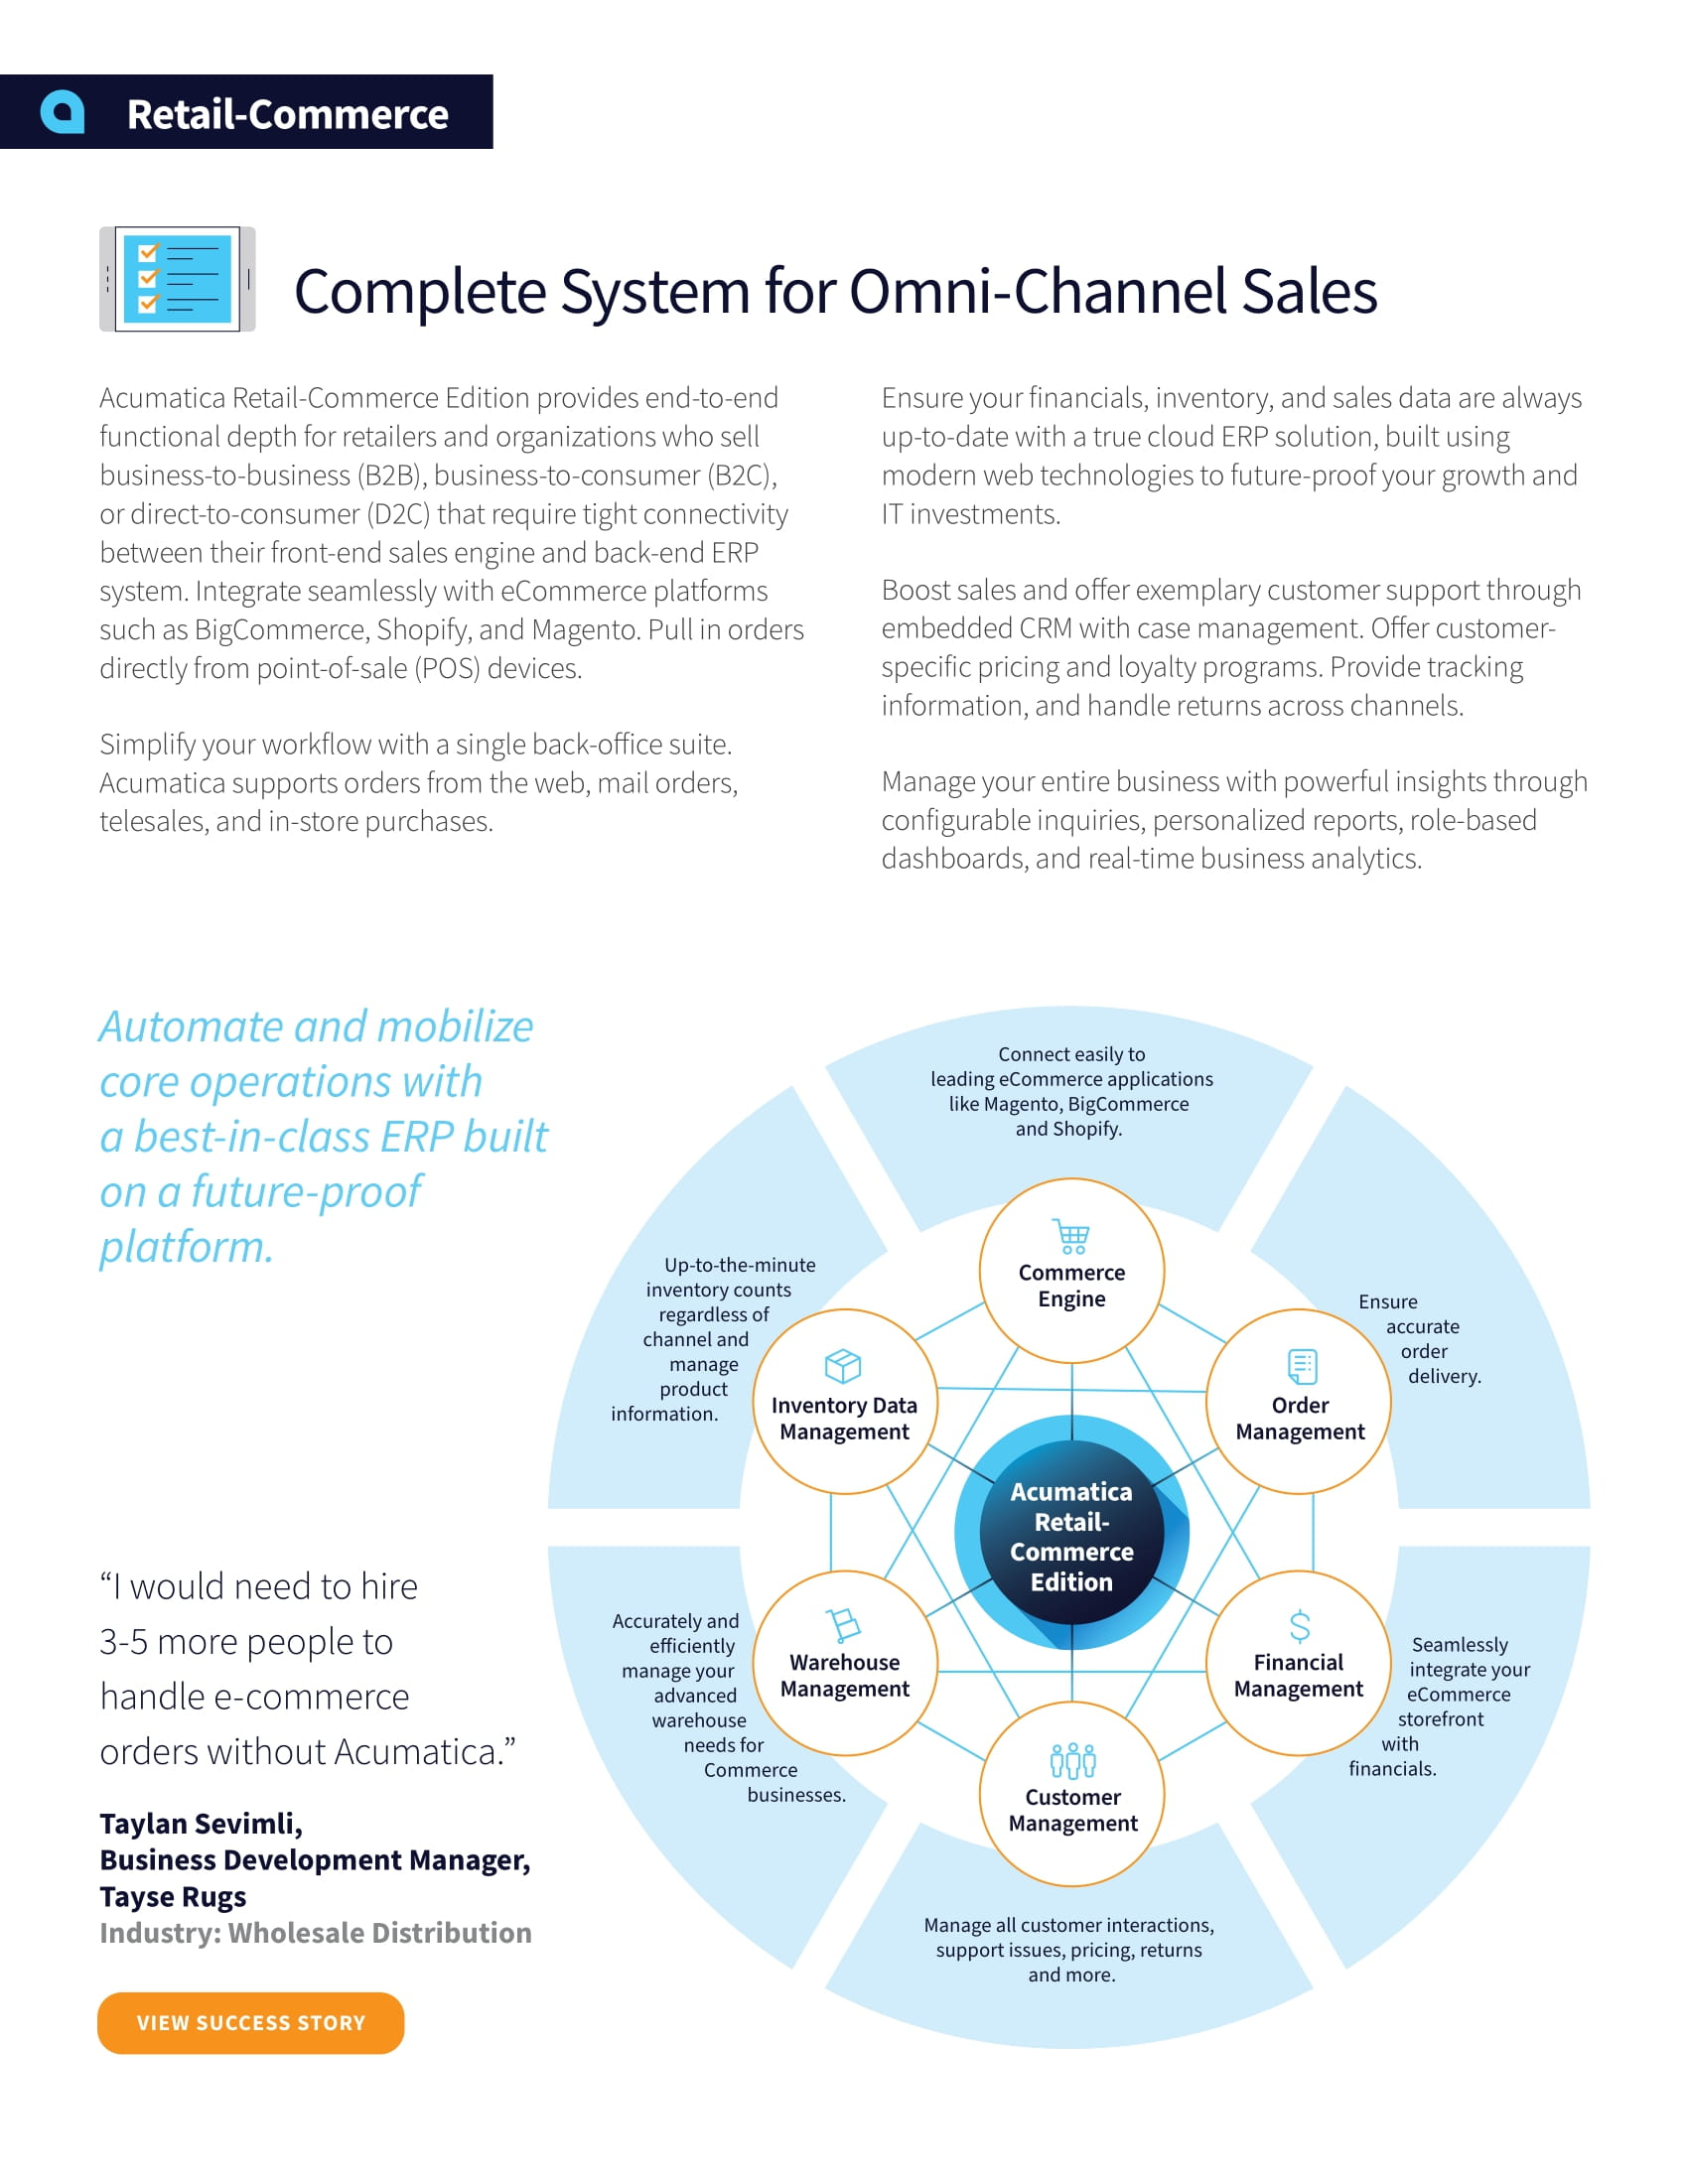 Choose an Commerce-Enabled ERP That Supports Your Whole Business, page 1